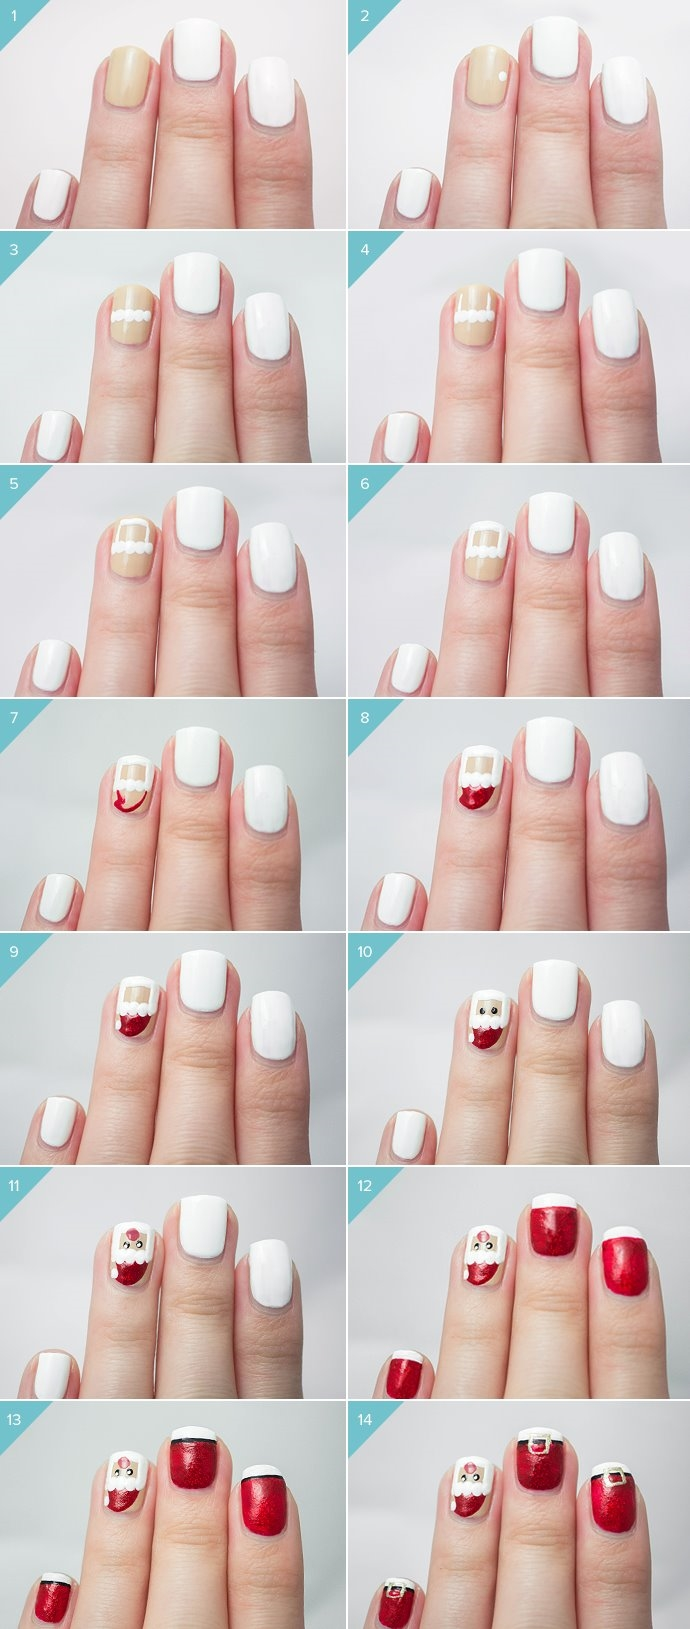 BEST TUTORIAL FOR NAIL ART 2016 | Fashionte